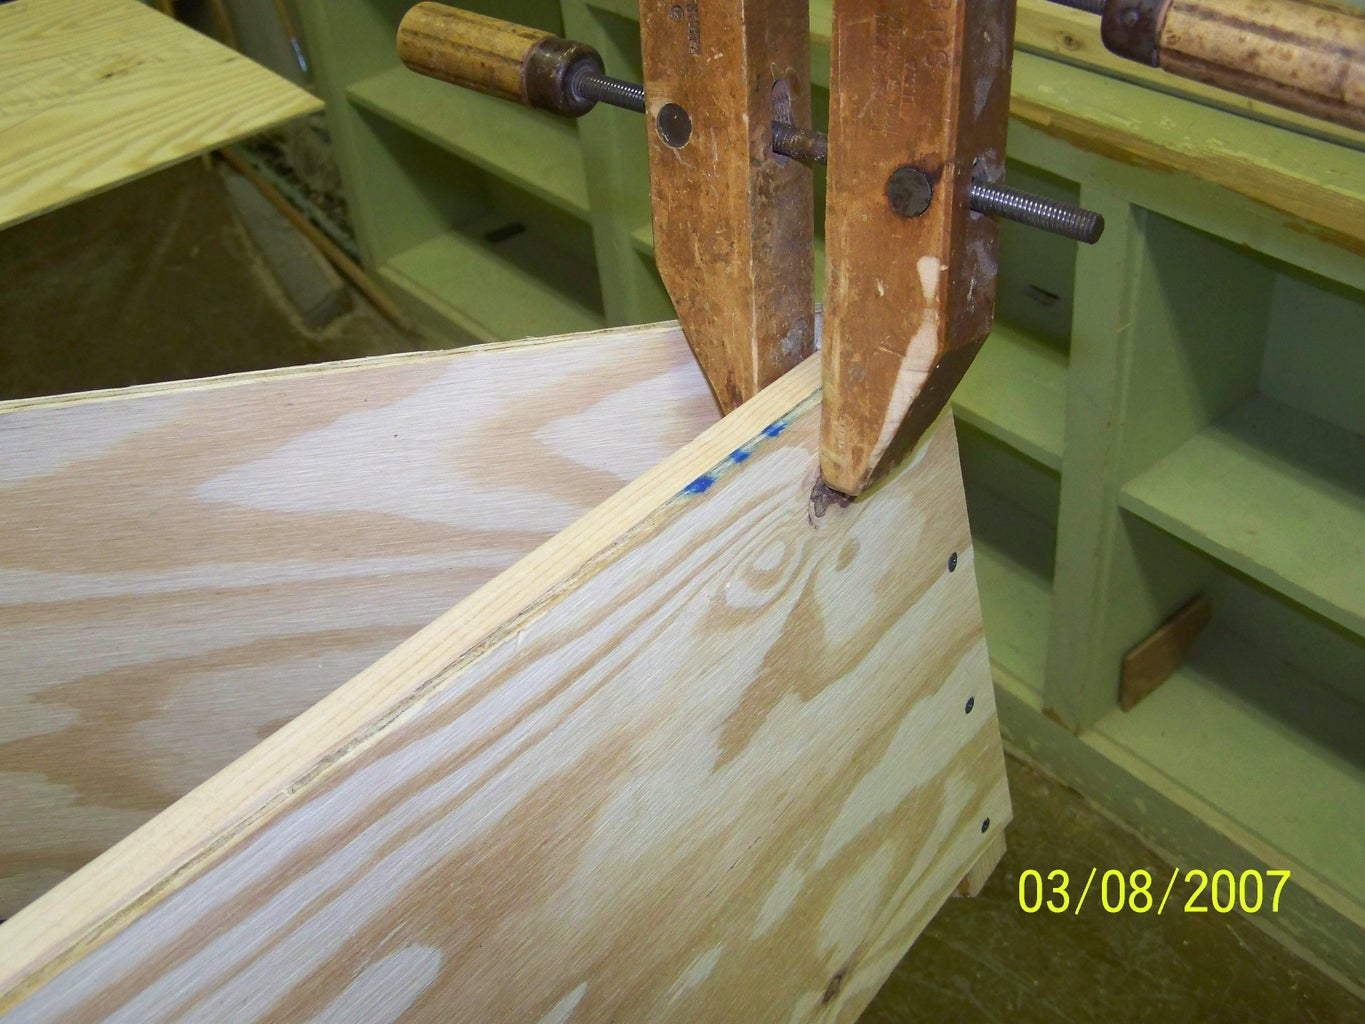 Installing the Chine Logs